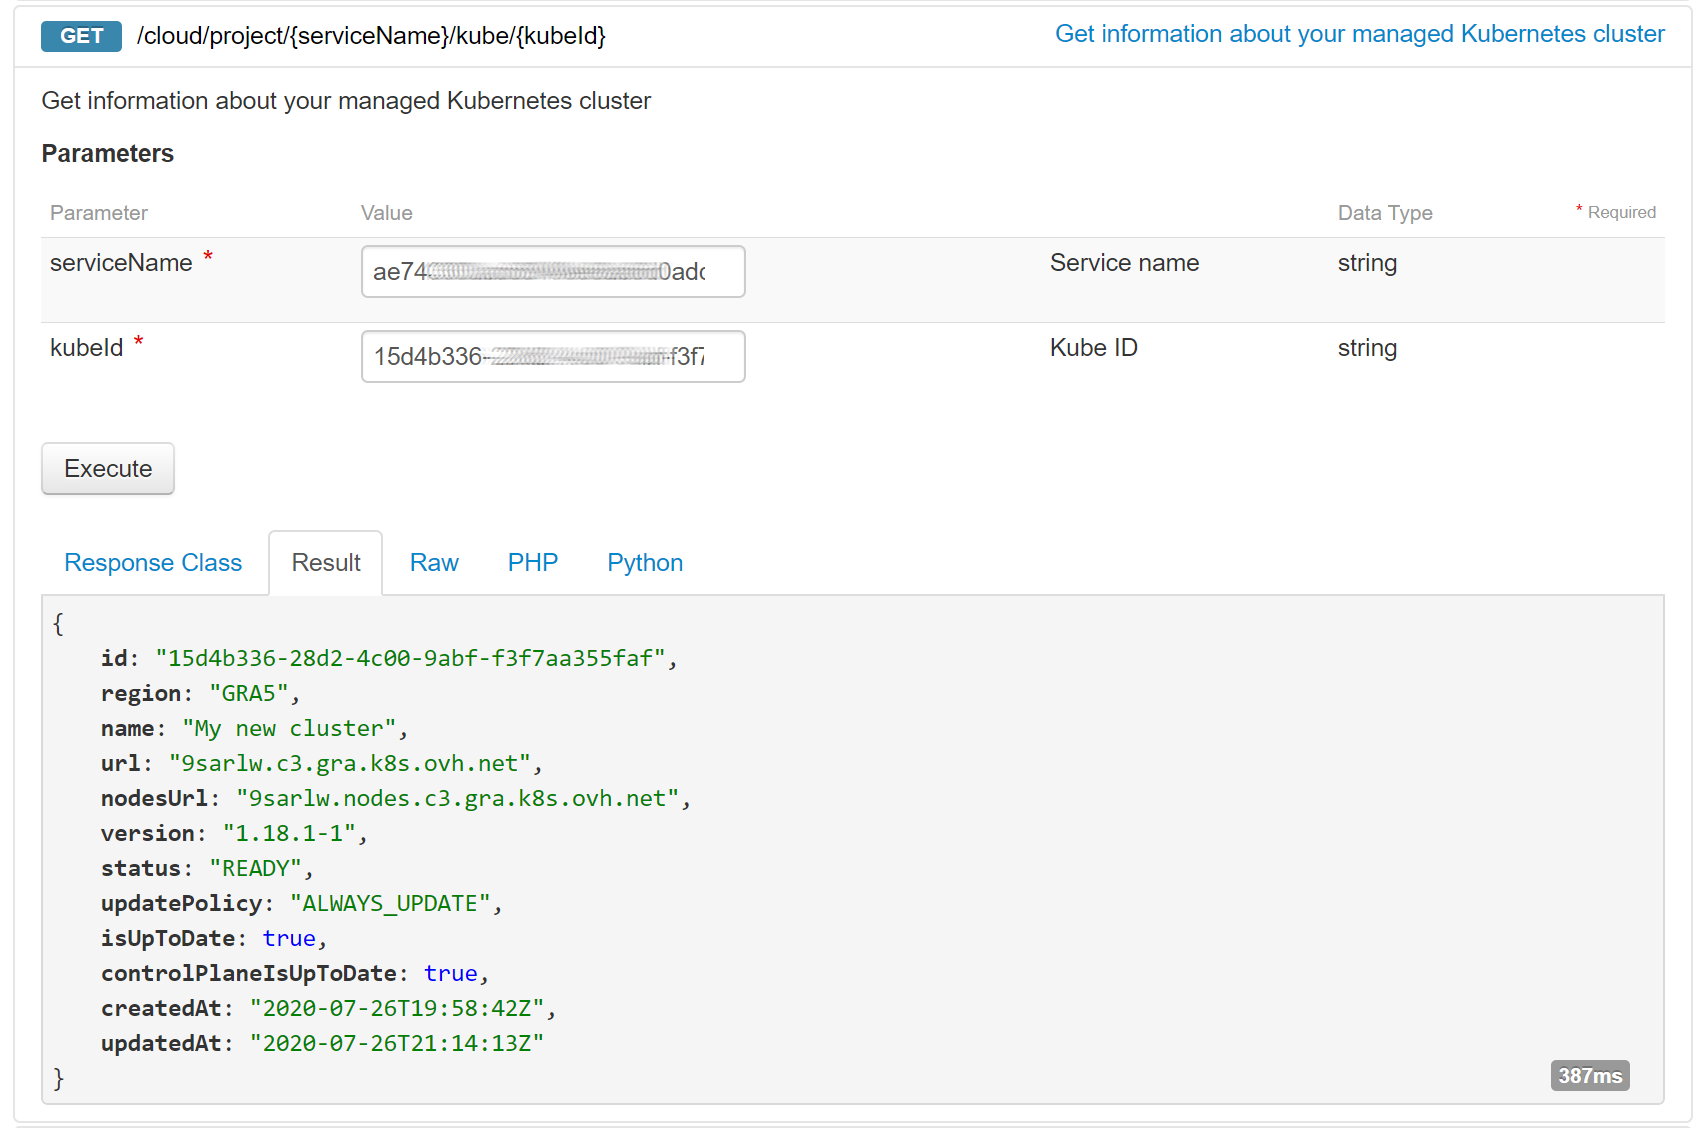 Getting your cluster information in the OVHcloud API